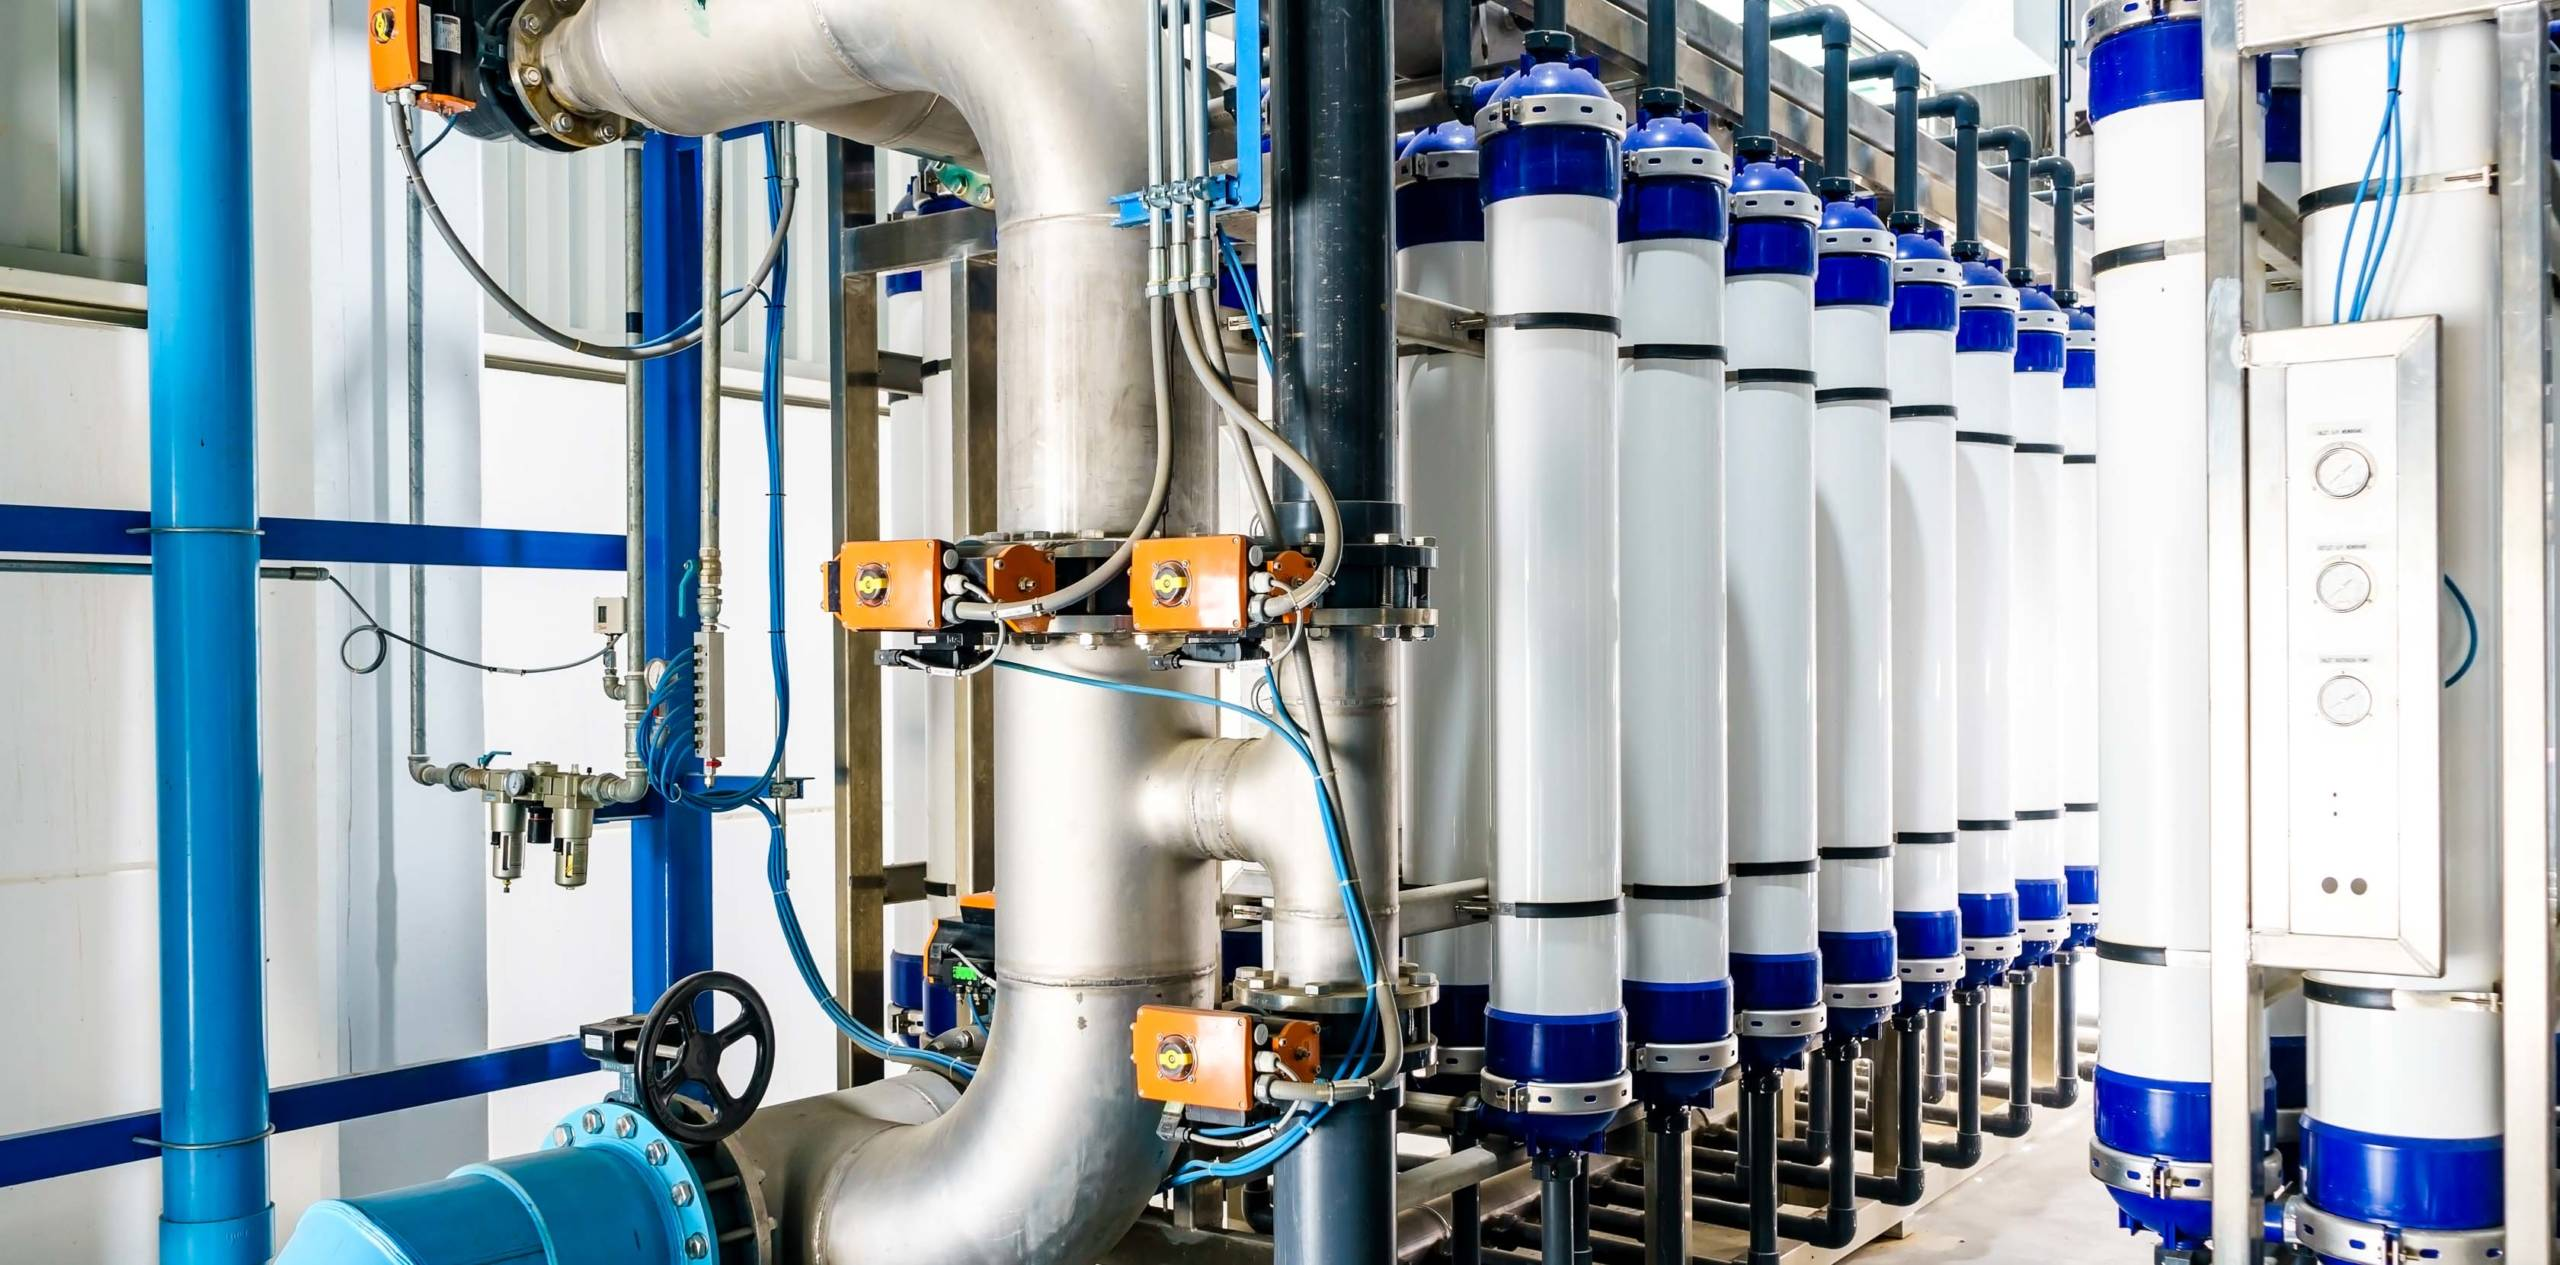 Osmosis systems in a commercial and industrial setting.